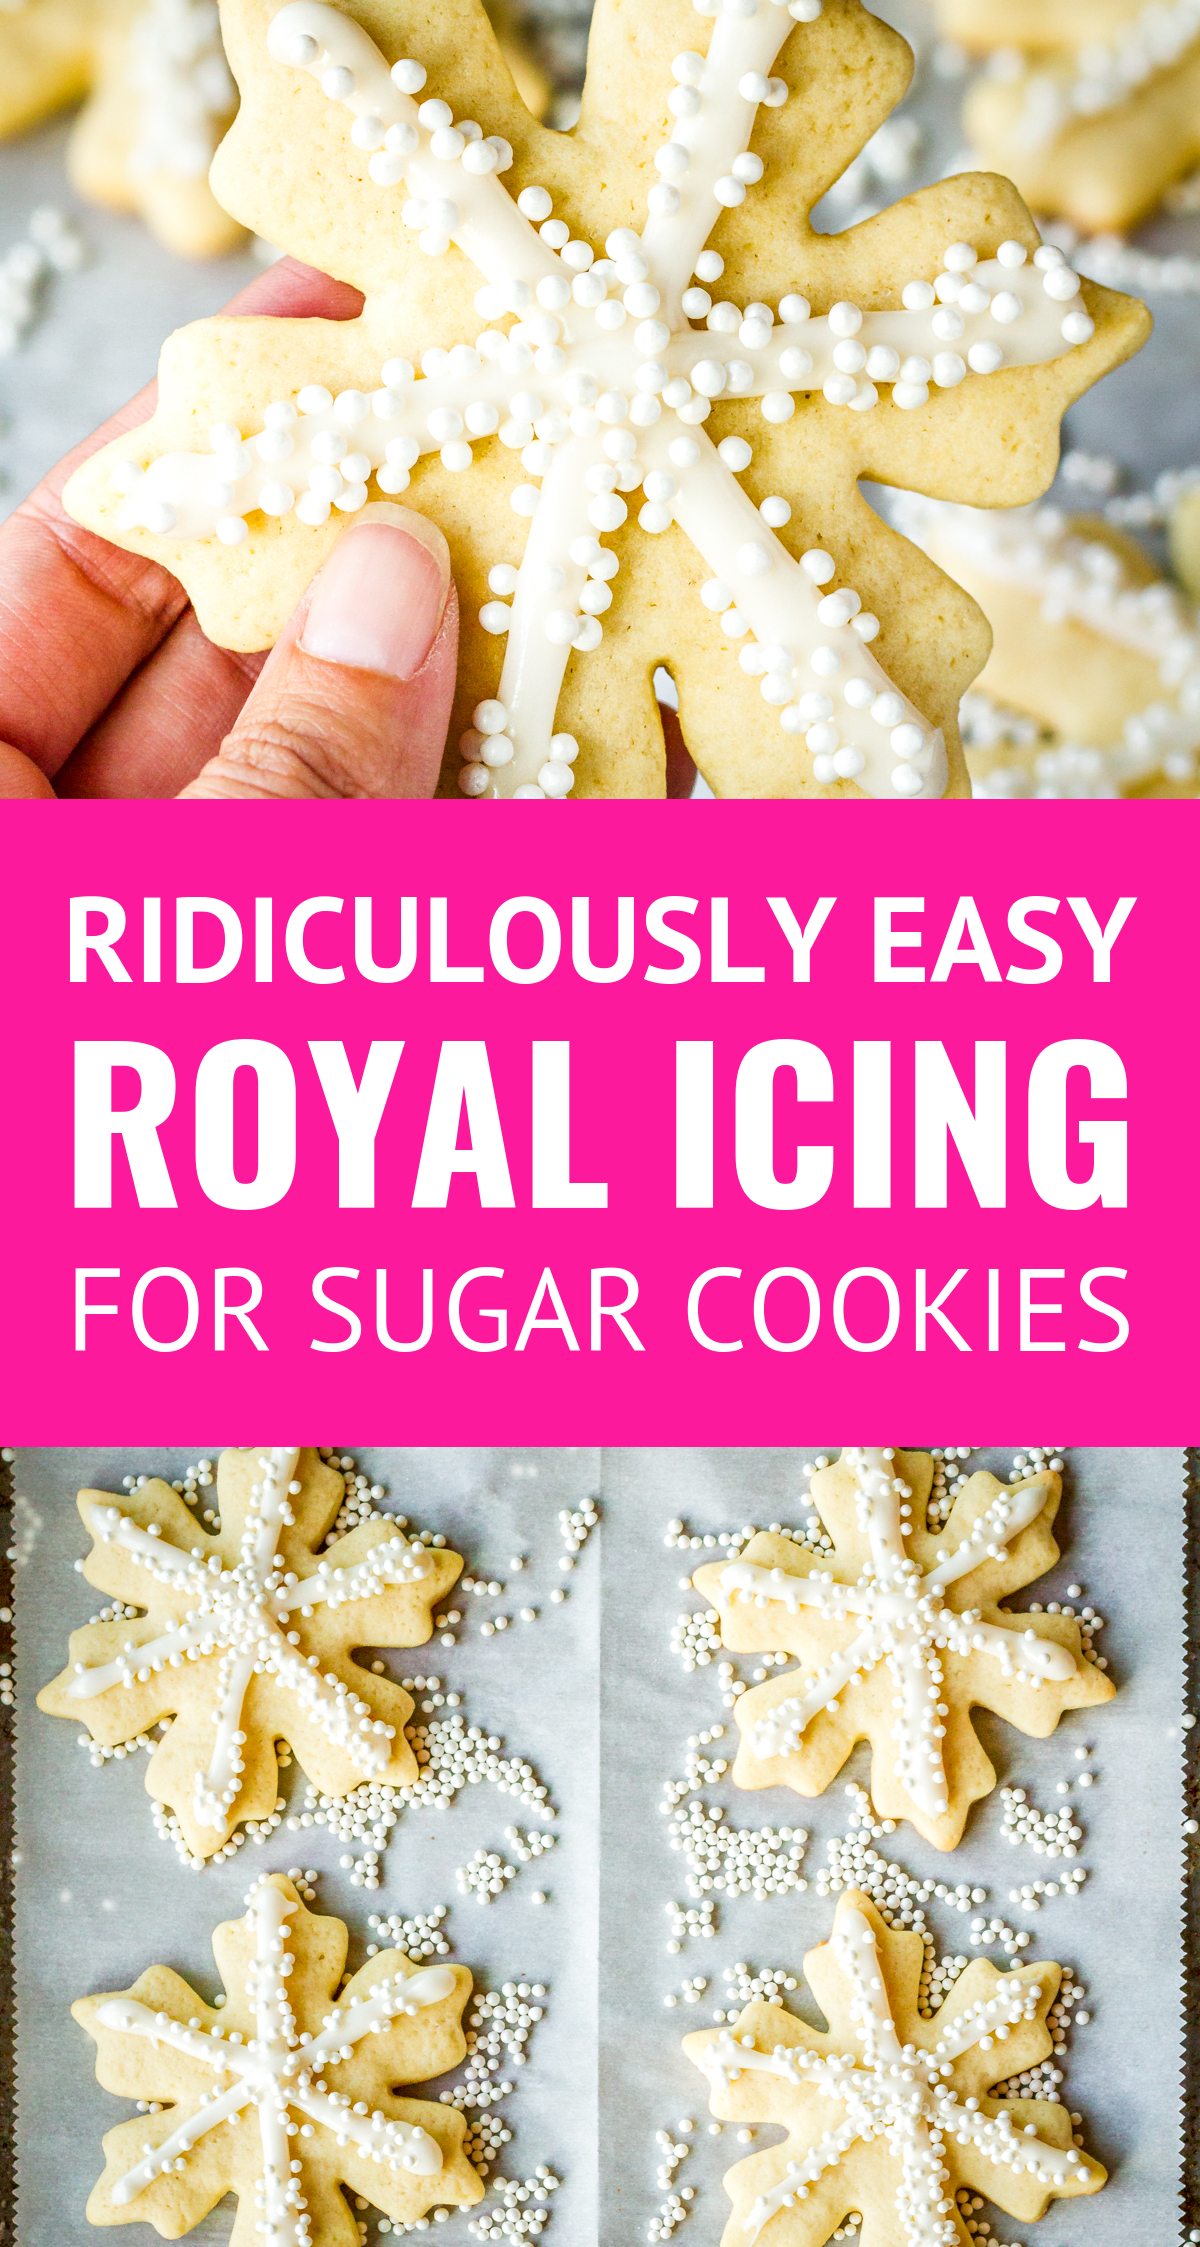 Easy Royal Icing Recipe For Sugar Cookies This Easy Royal Icing